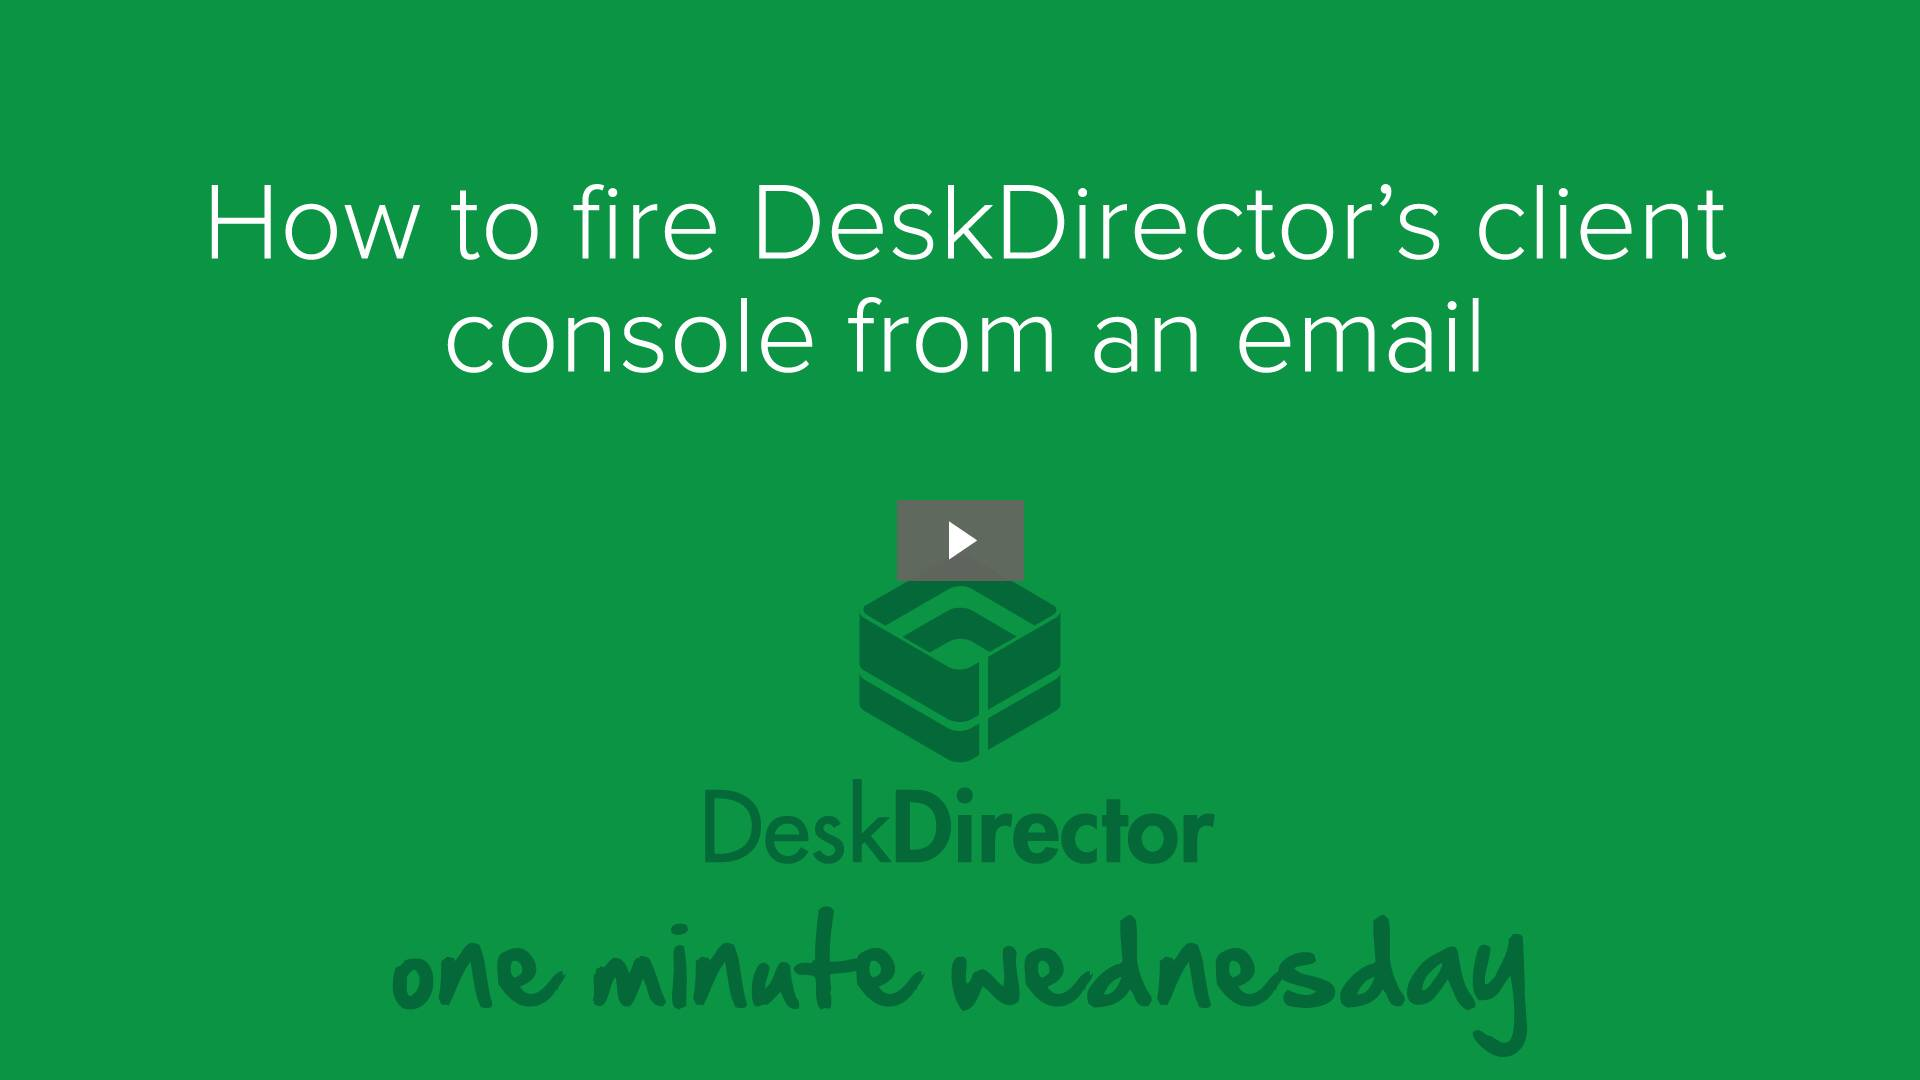 How to fire up DeskDirector from an email